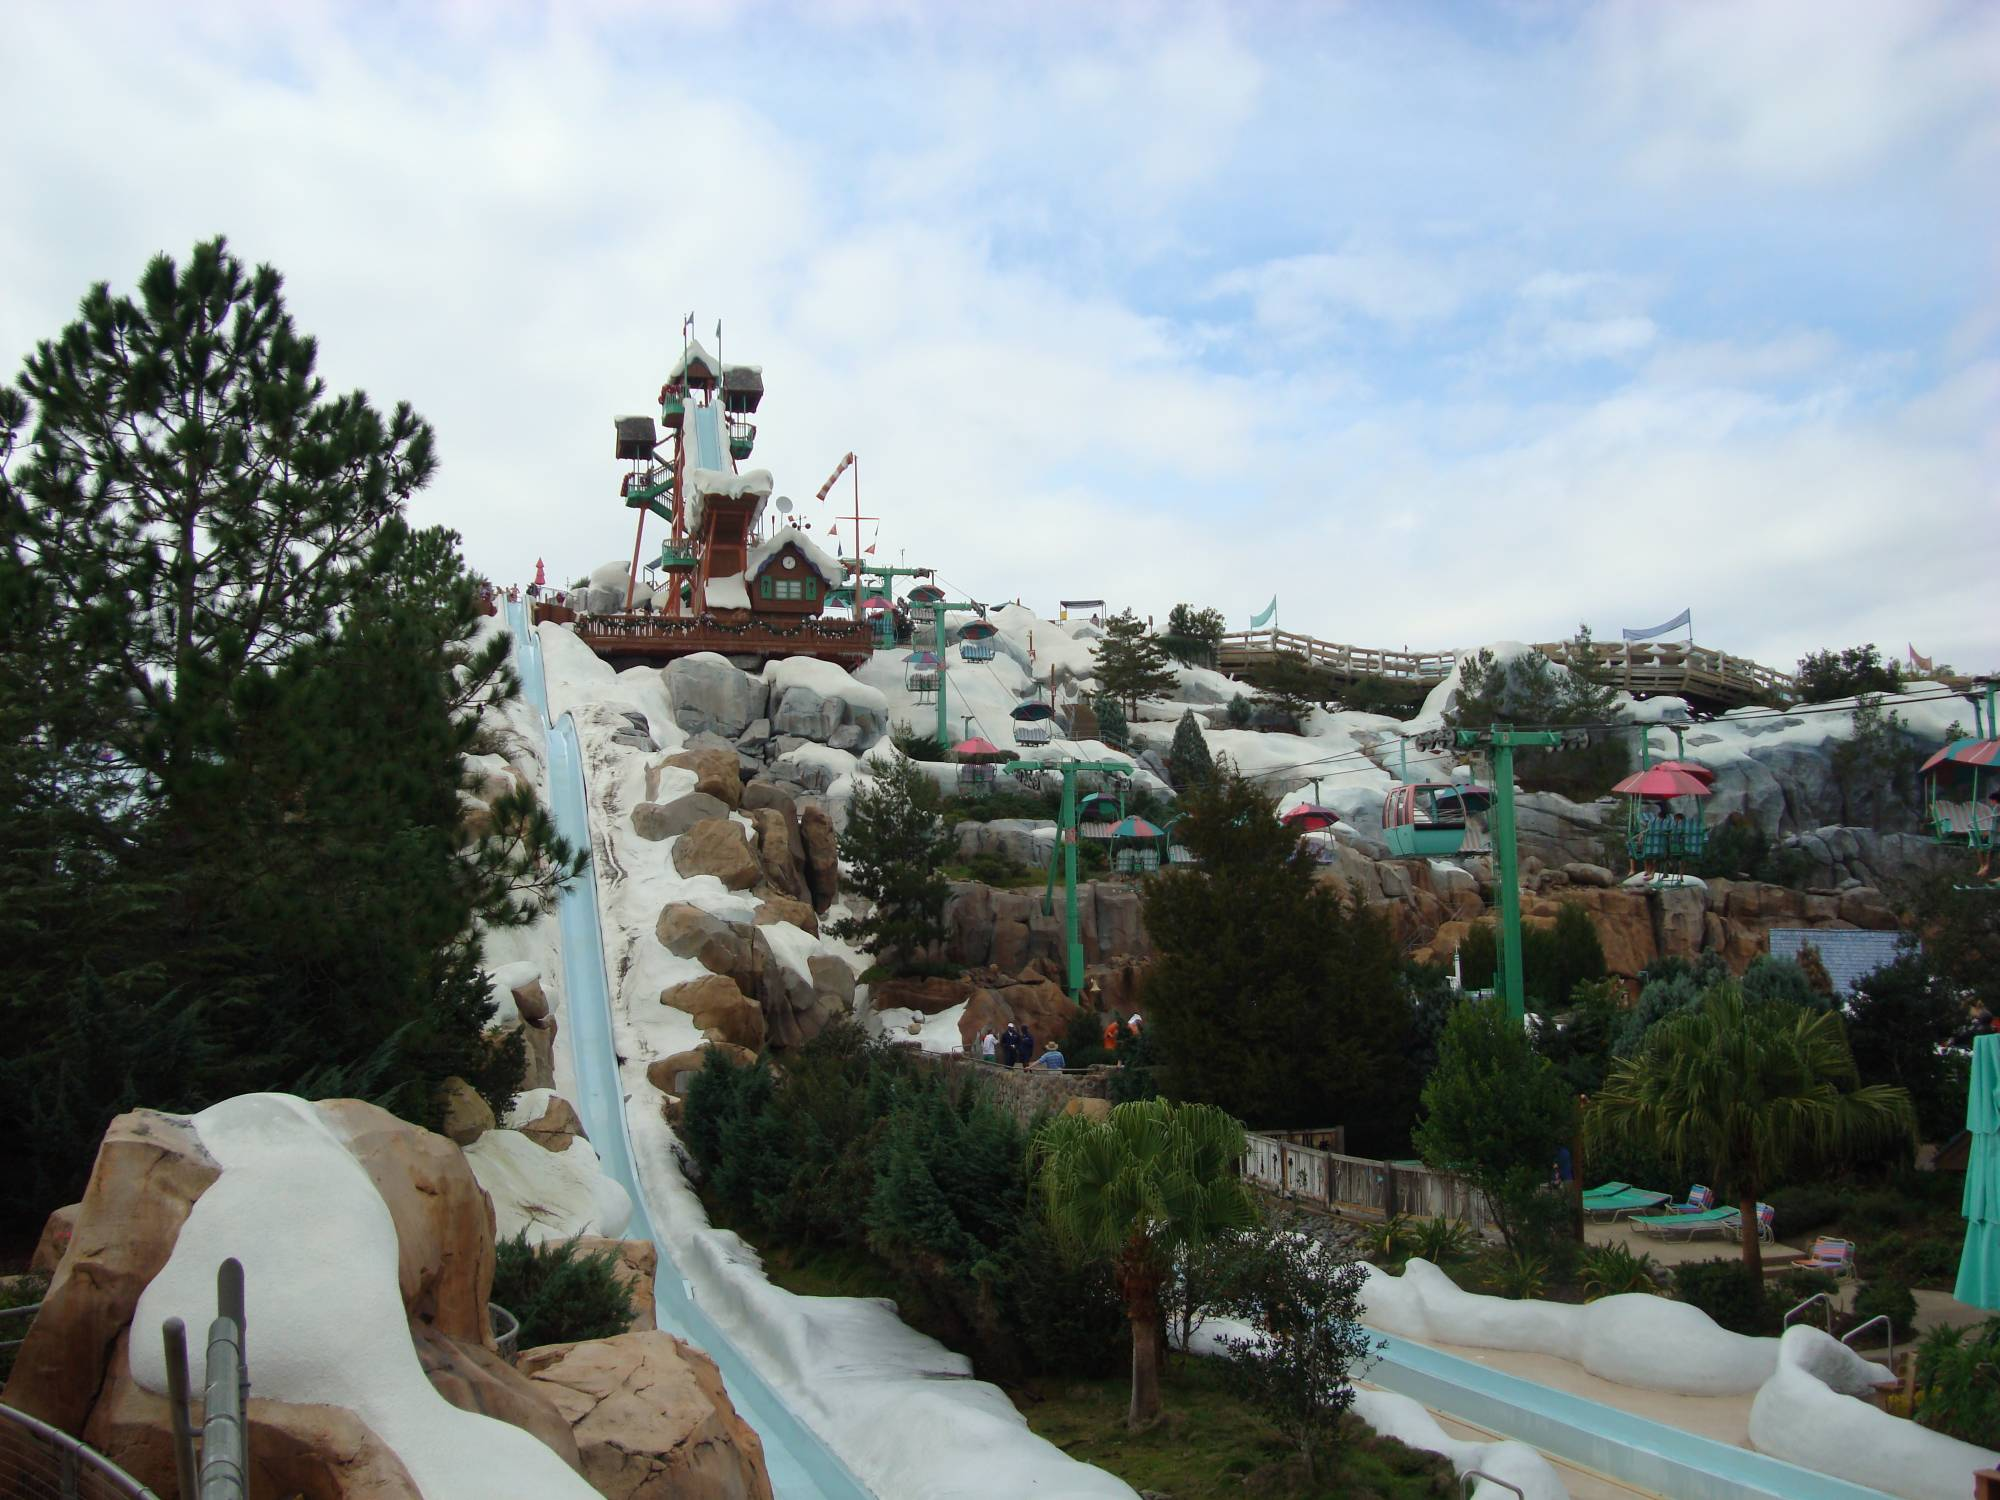 Chill out at Blizzard Beach at Walt Disney World |PassPorter.com